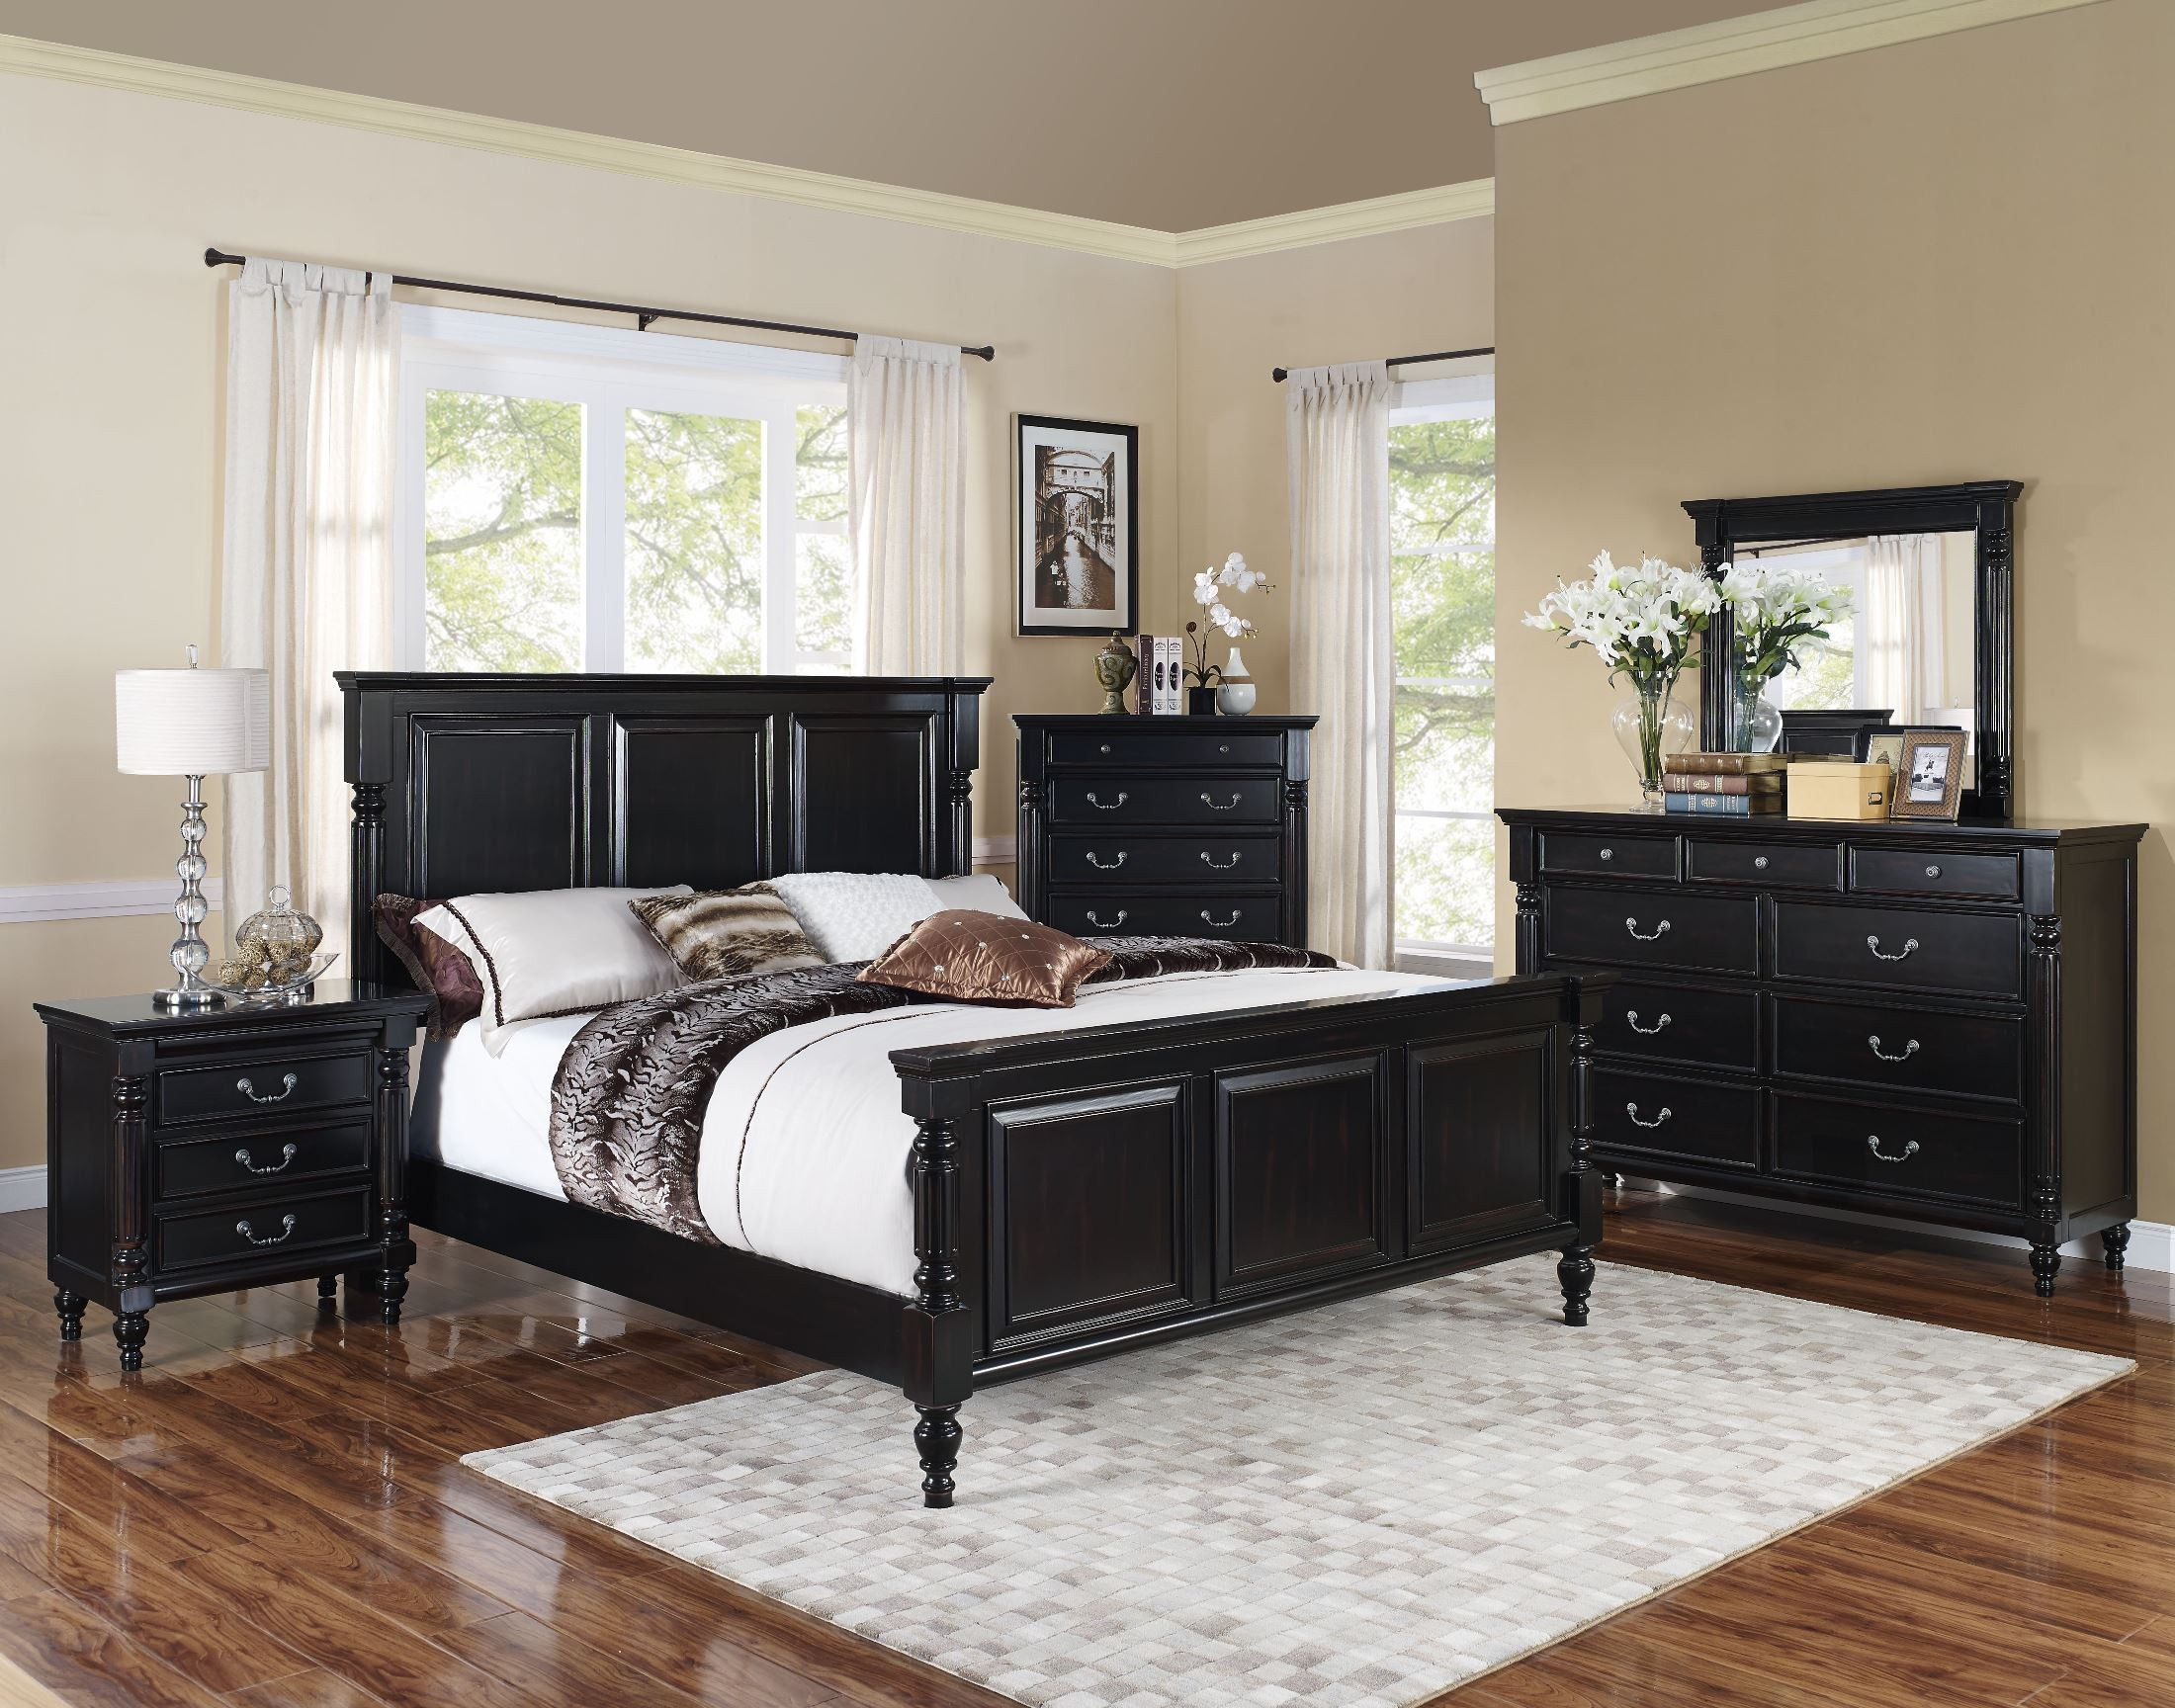 Martinique Rubbed Black Panel Bedroom Set From New